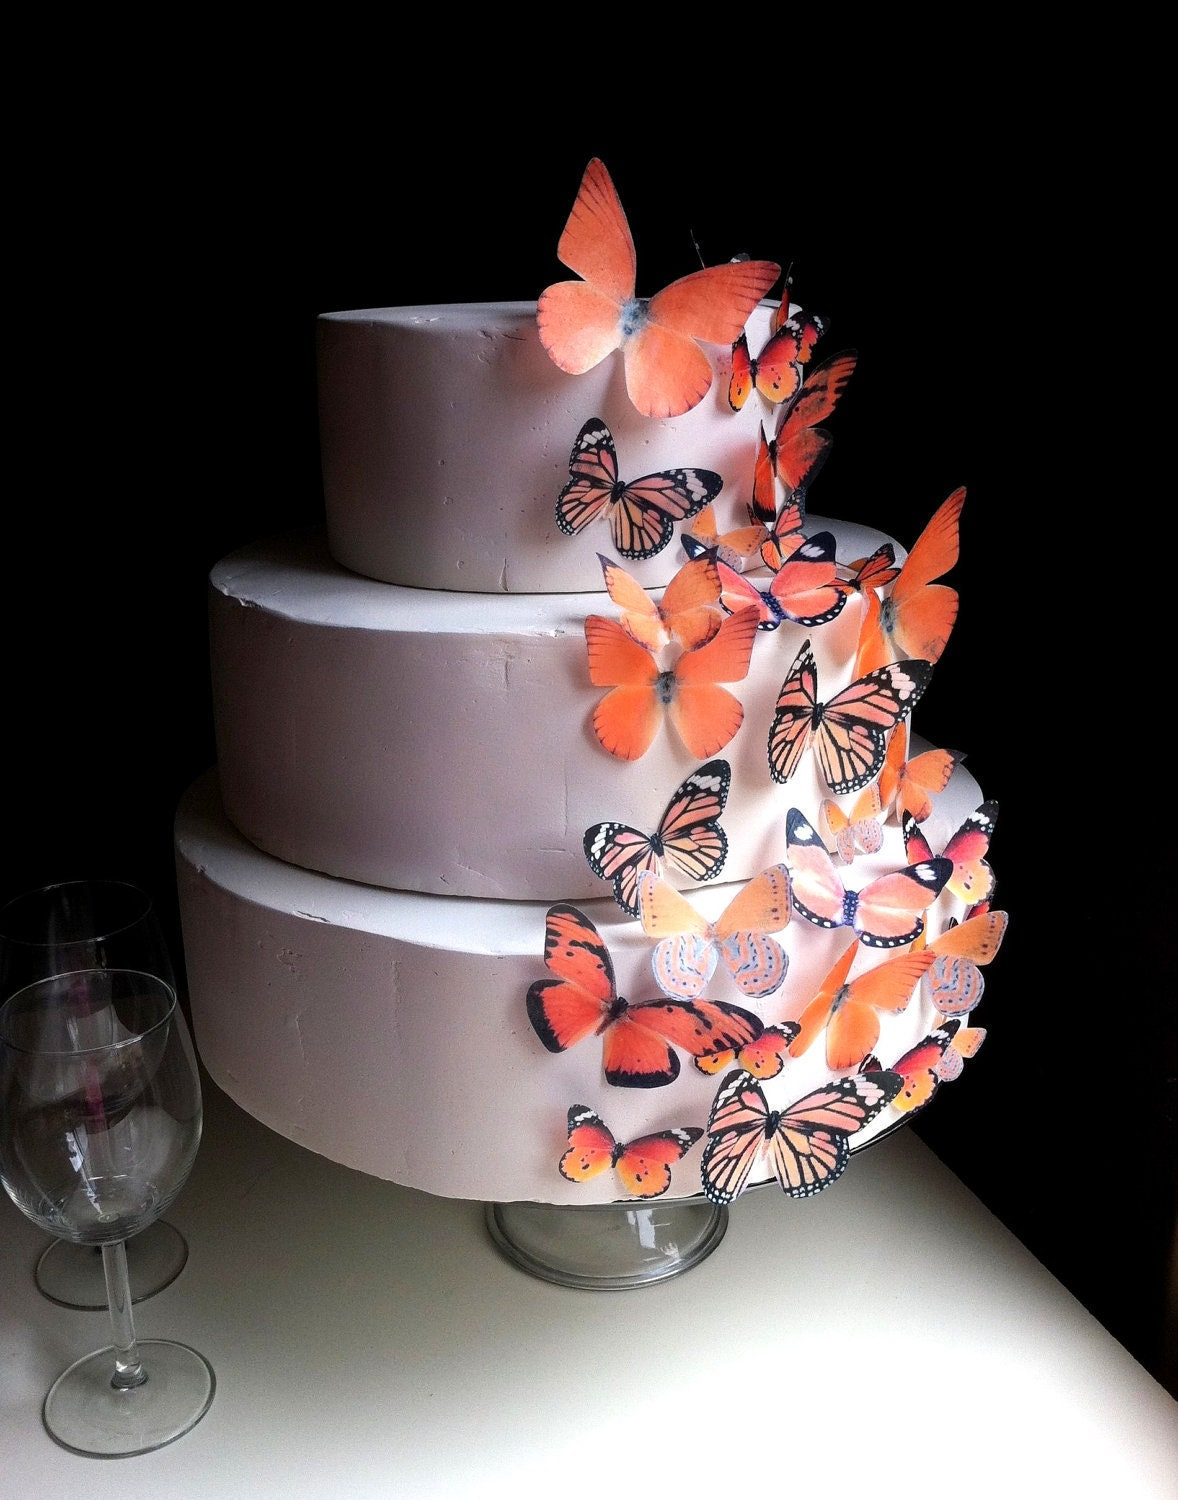 Butterfly Edible Cake Images : Butterfly Cake Decorations. PURPLE PINK & BLUE Small ...